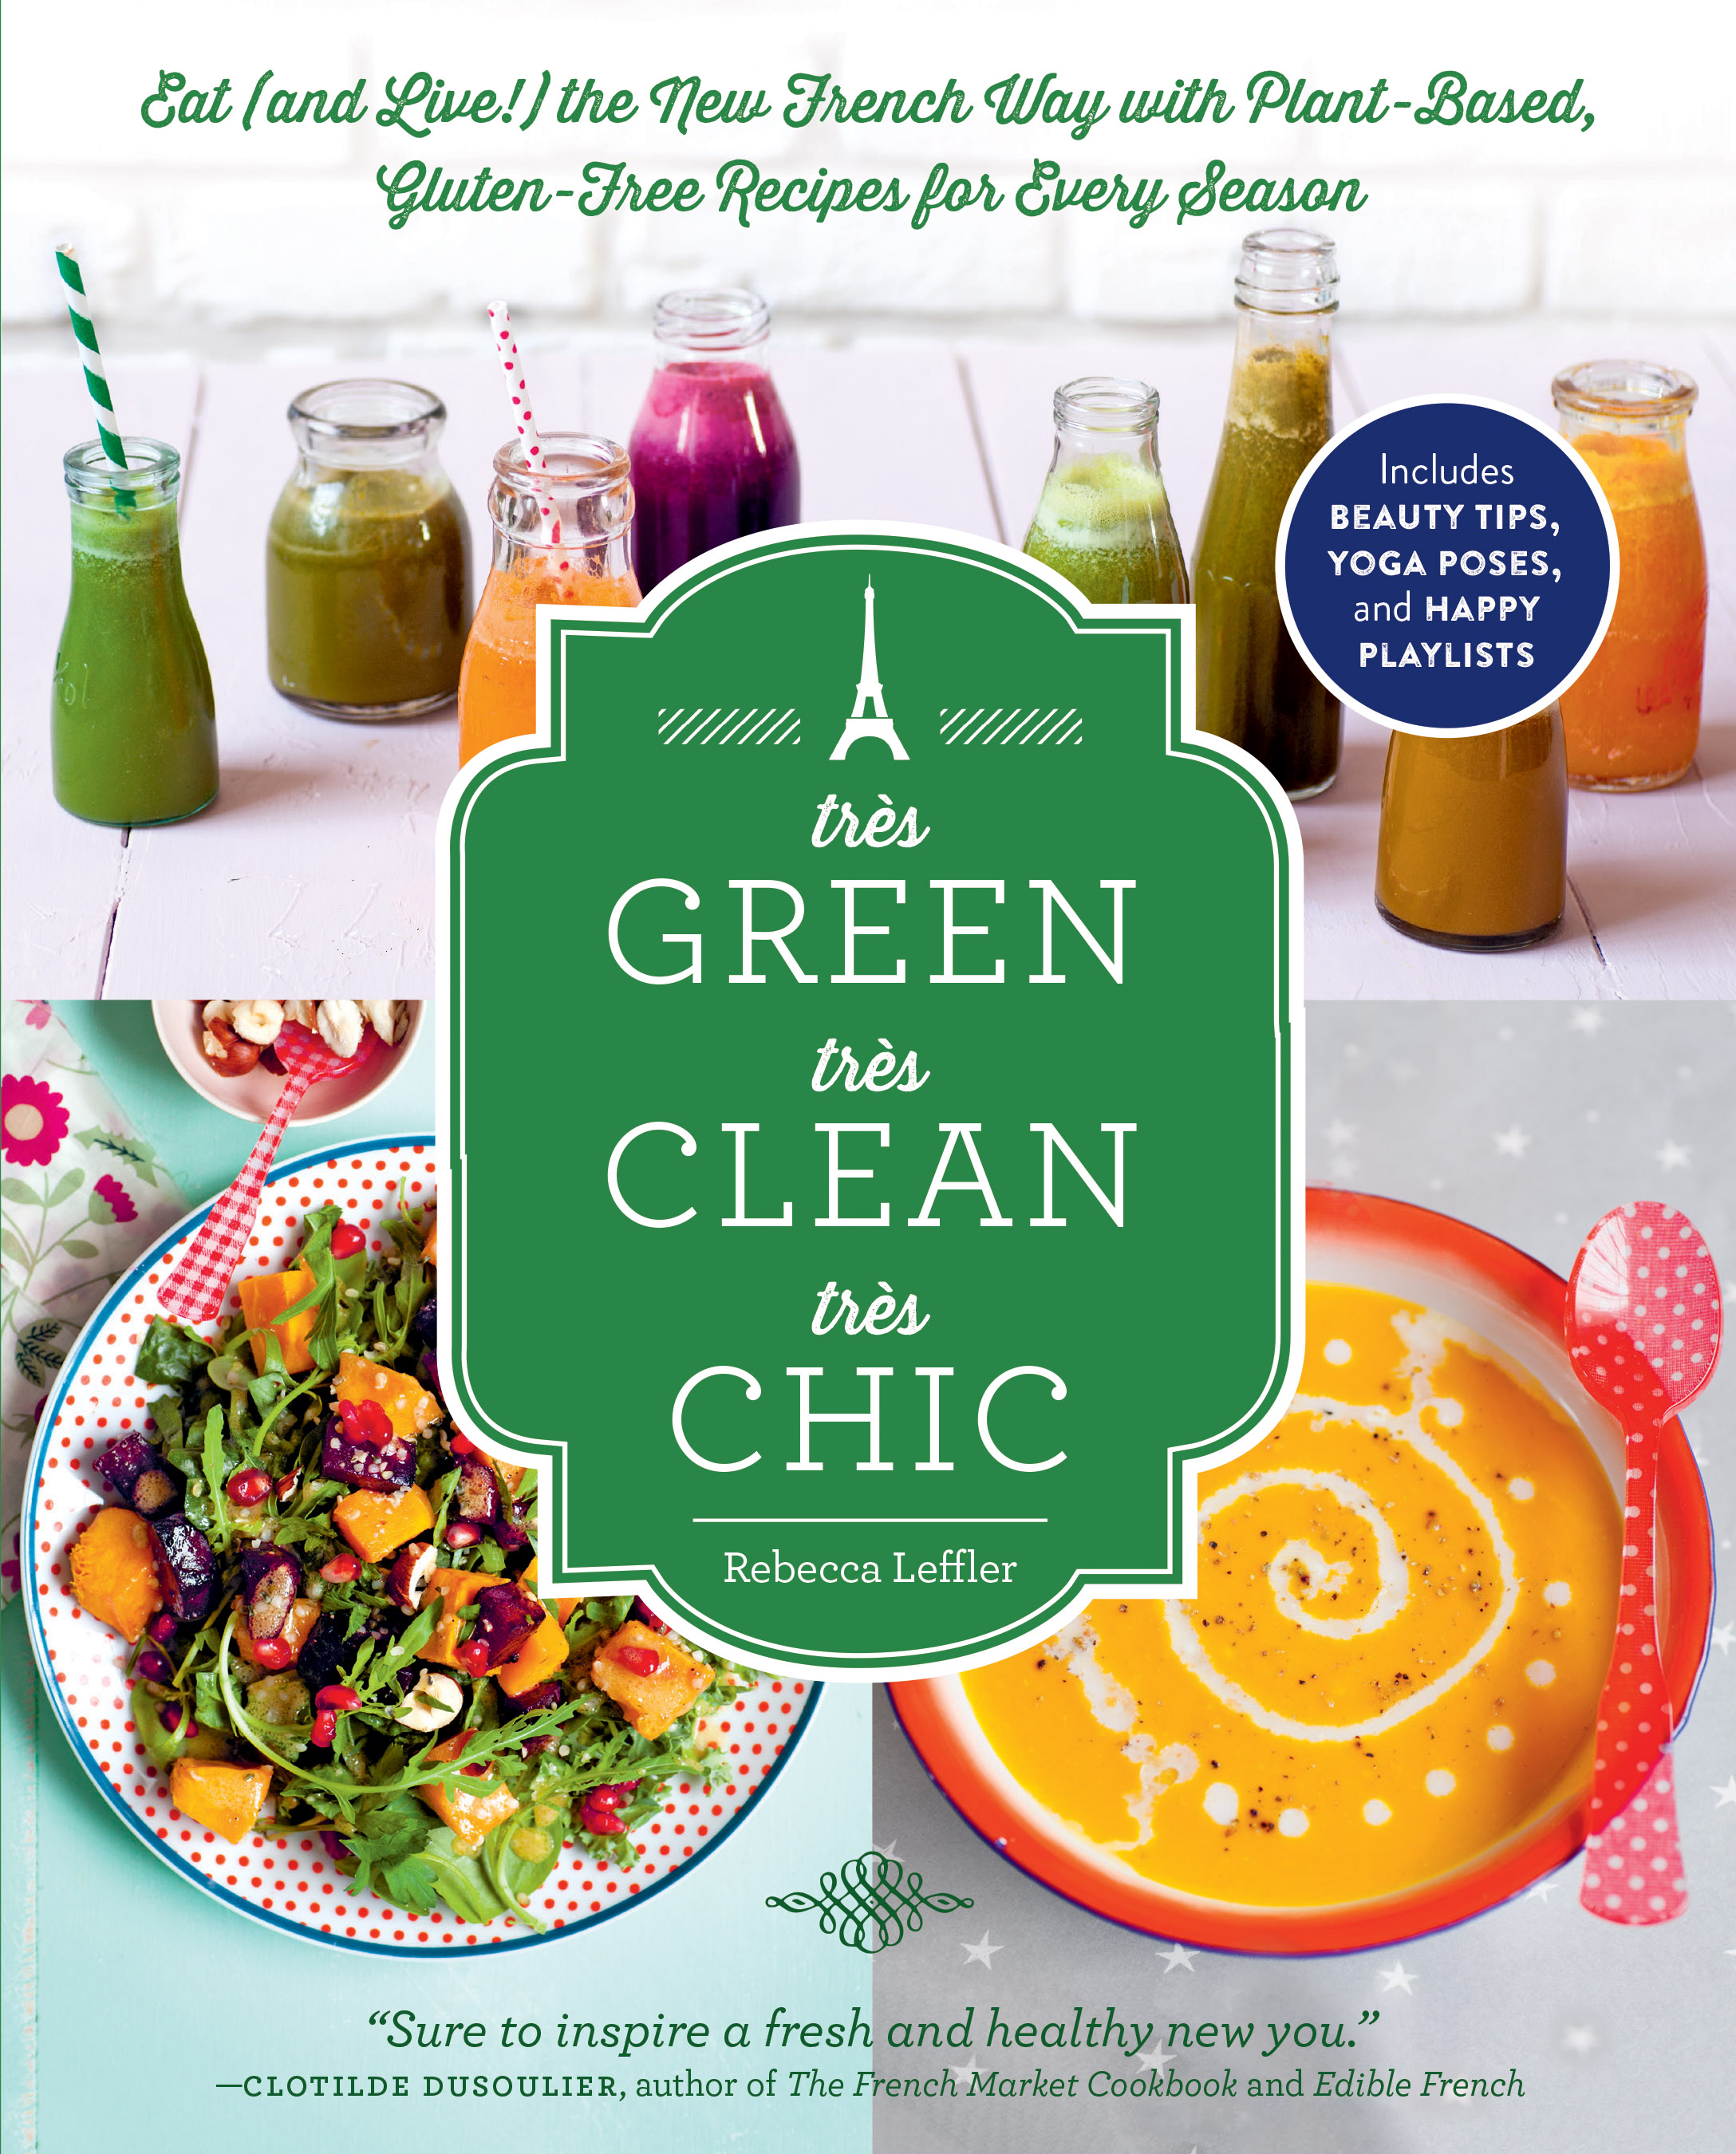 Très Green, Très Clean, Très Chic by Rebecca Leffler // Gluten free and vegan recipes for living a clean, green life, the French way.